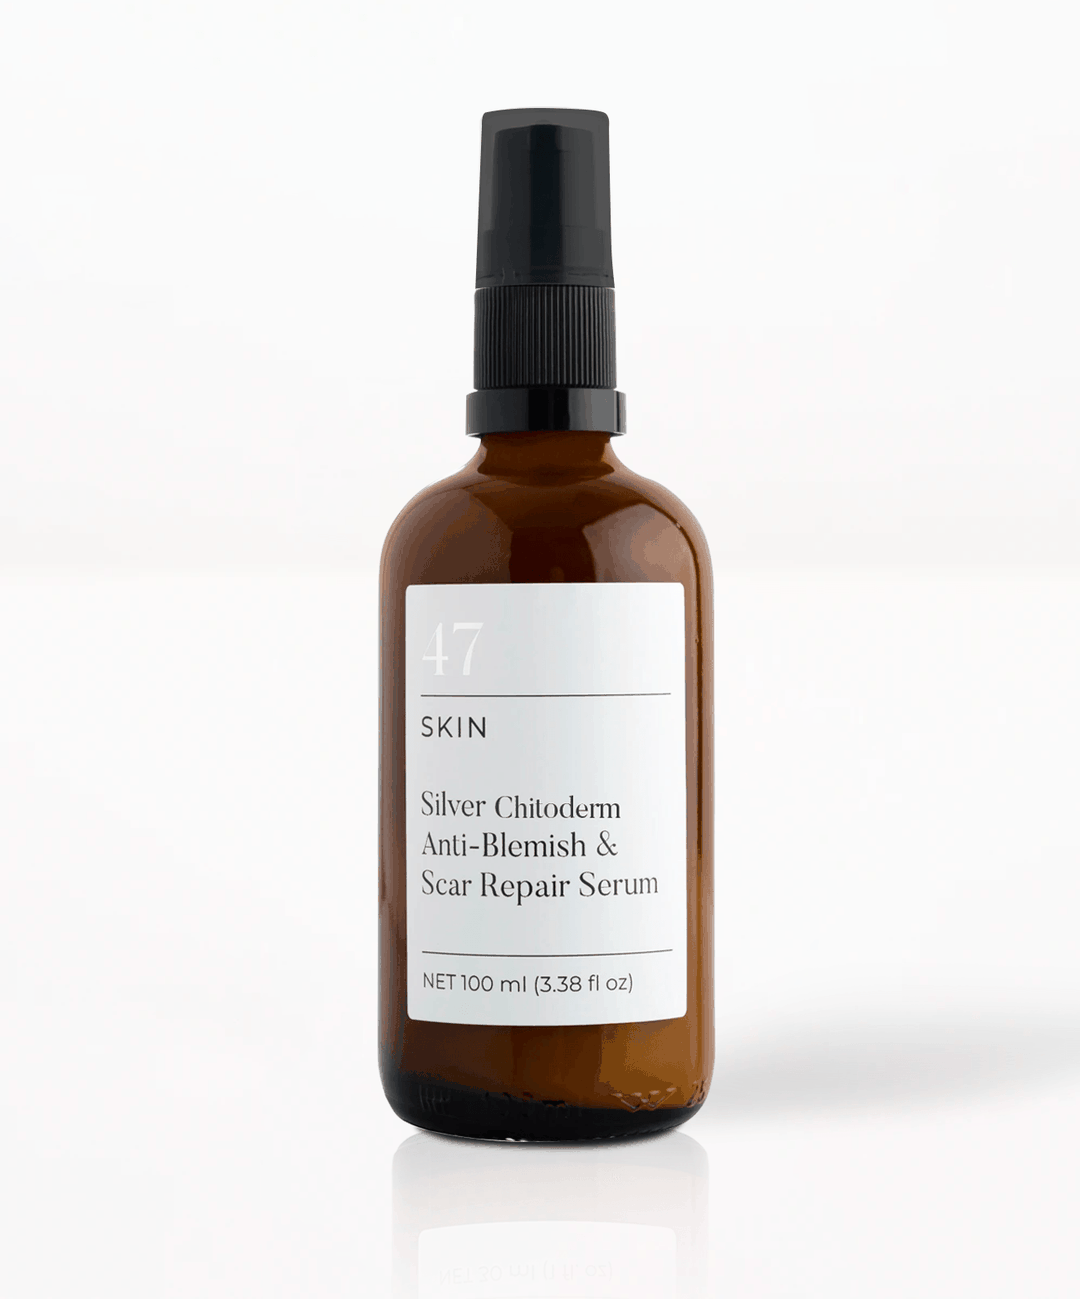 Anti-Blemish & Scar Repair Serum